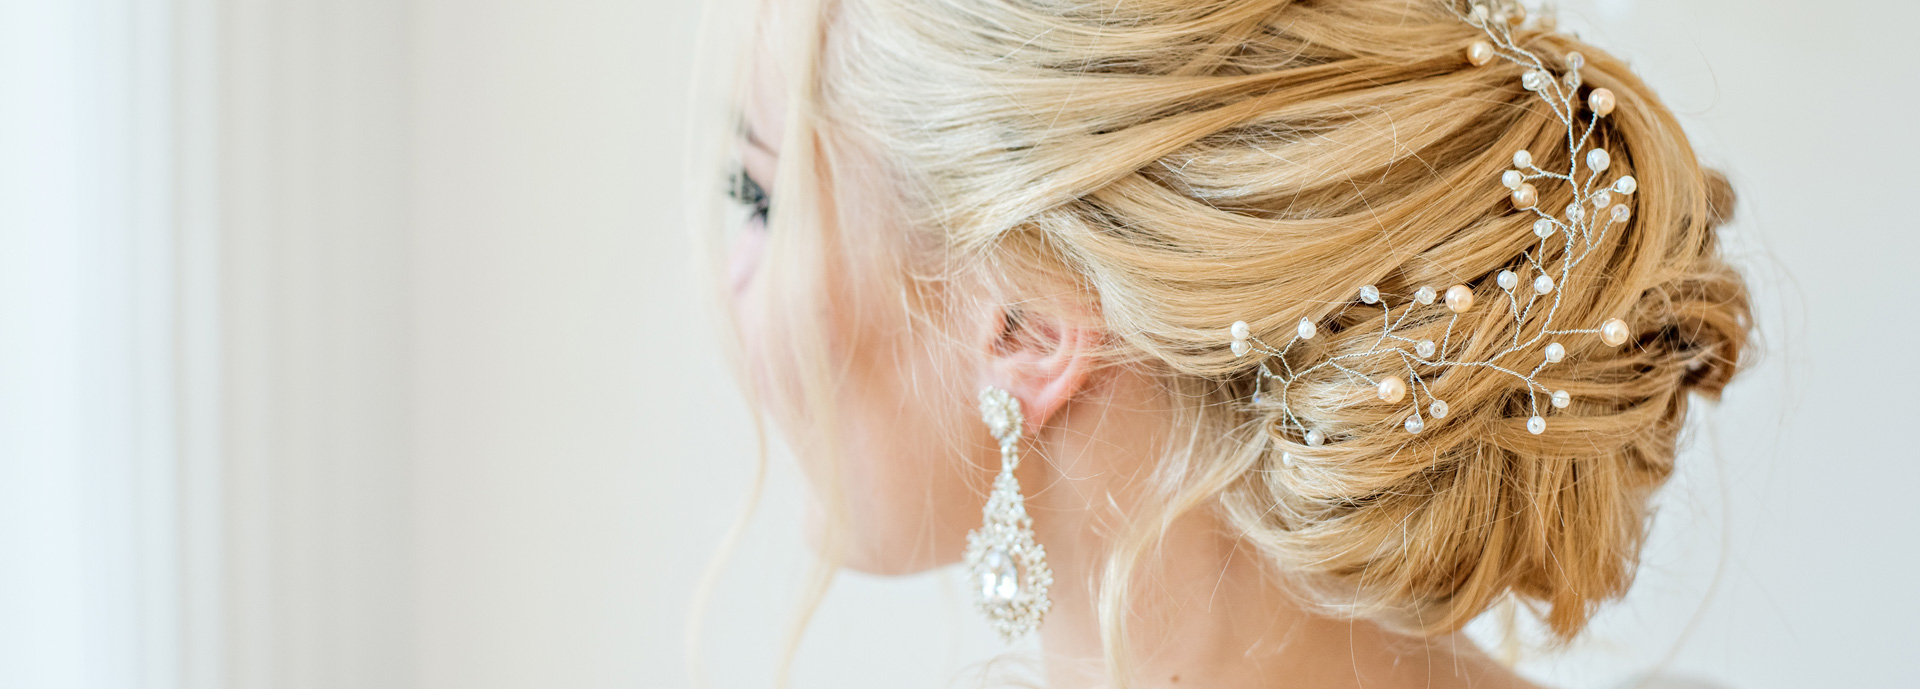 Wedding Hair and Makeup West Sussex